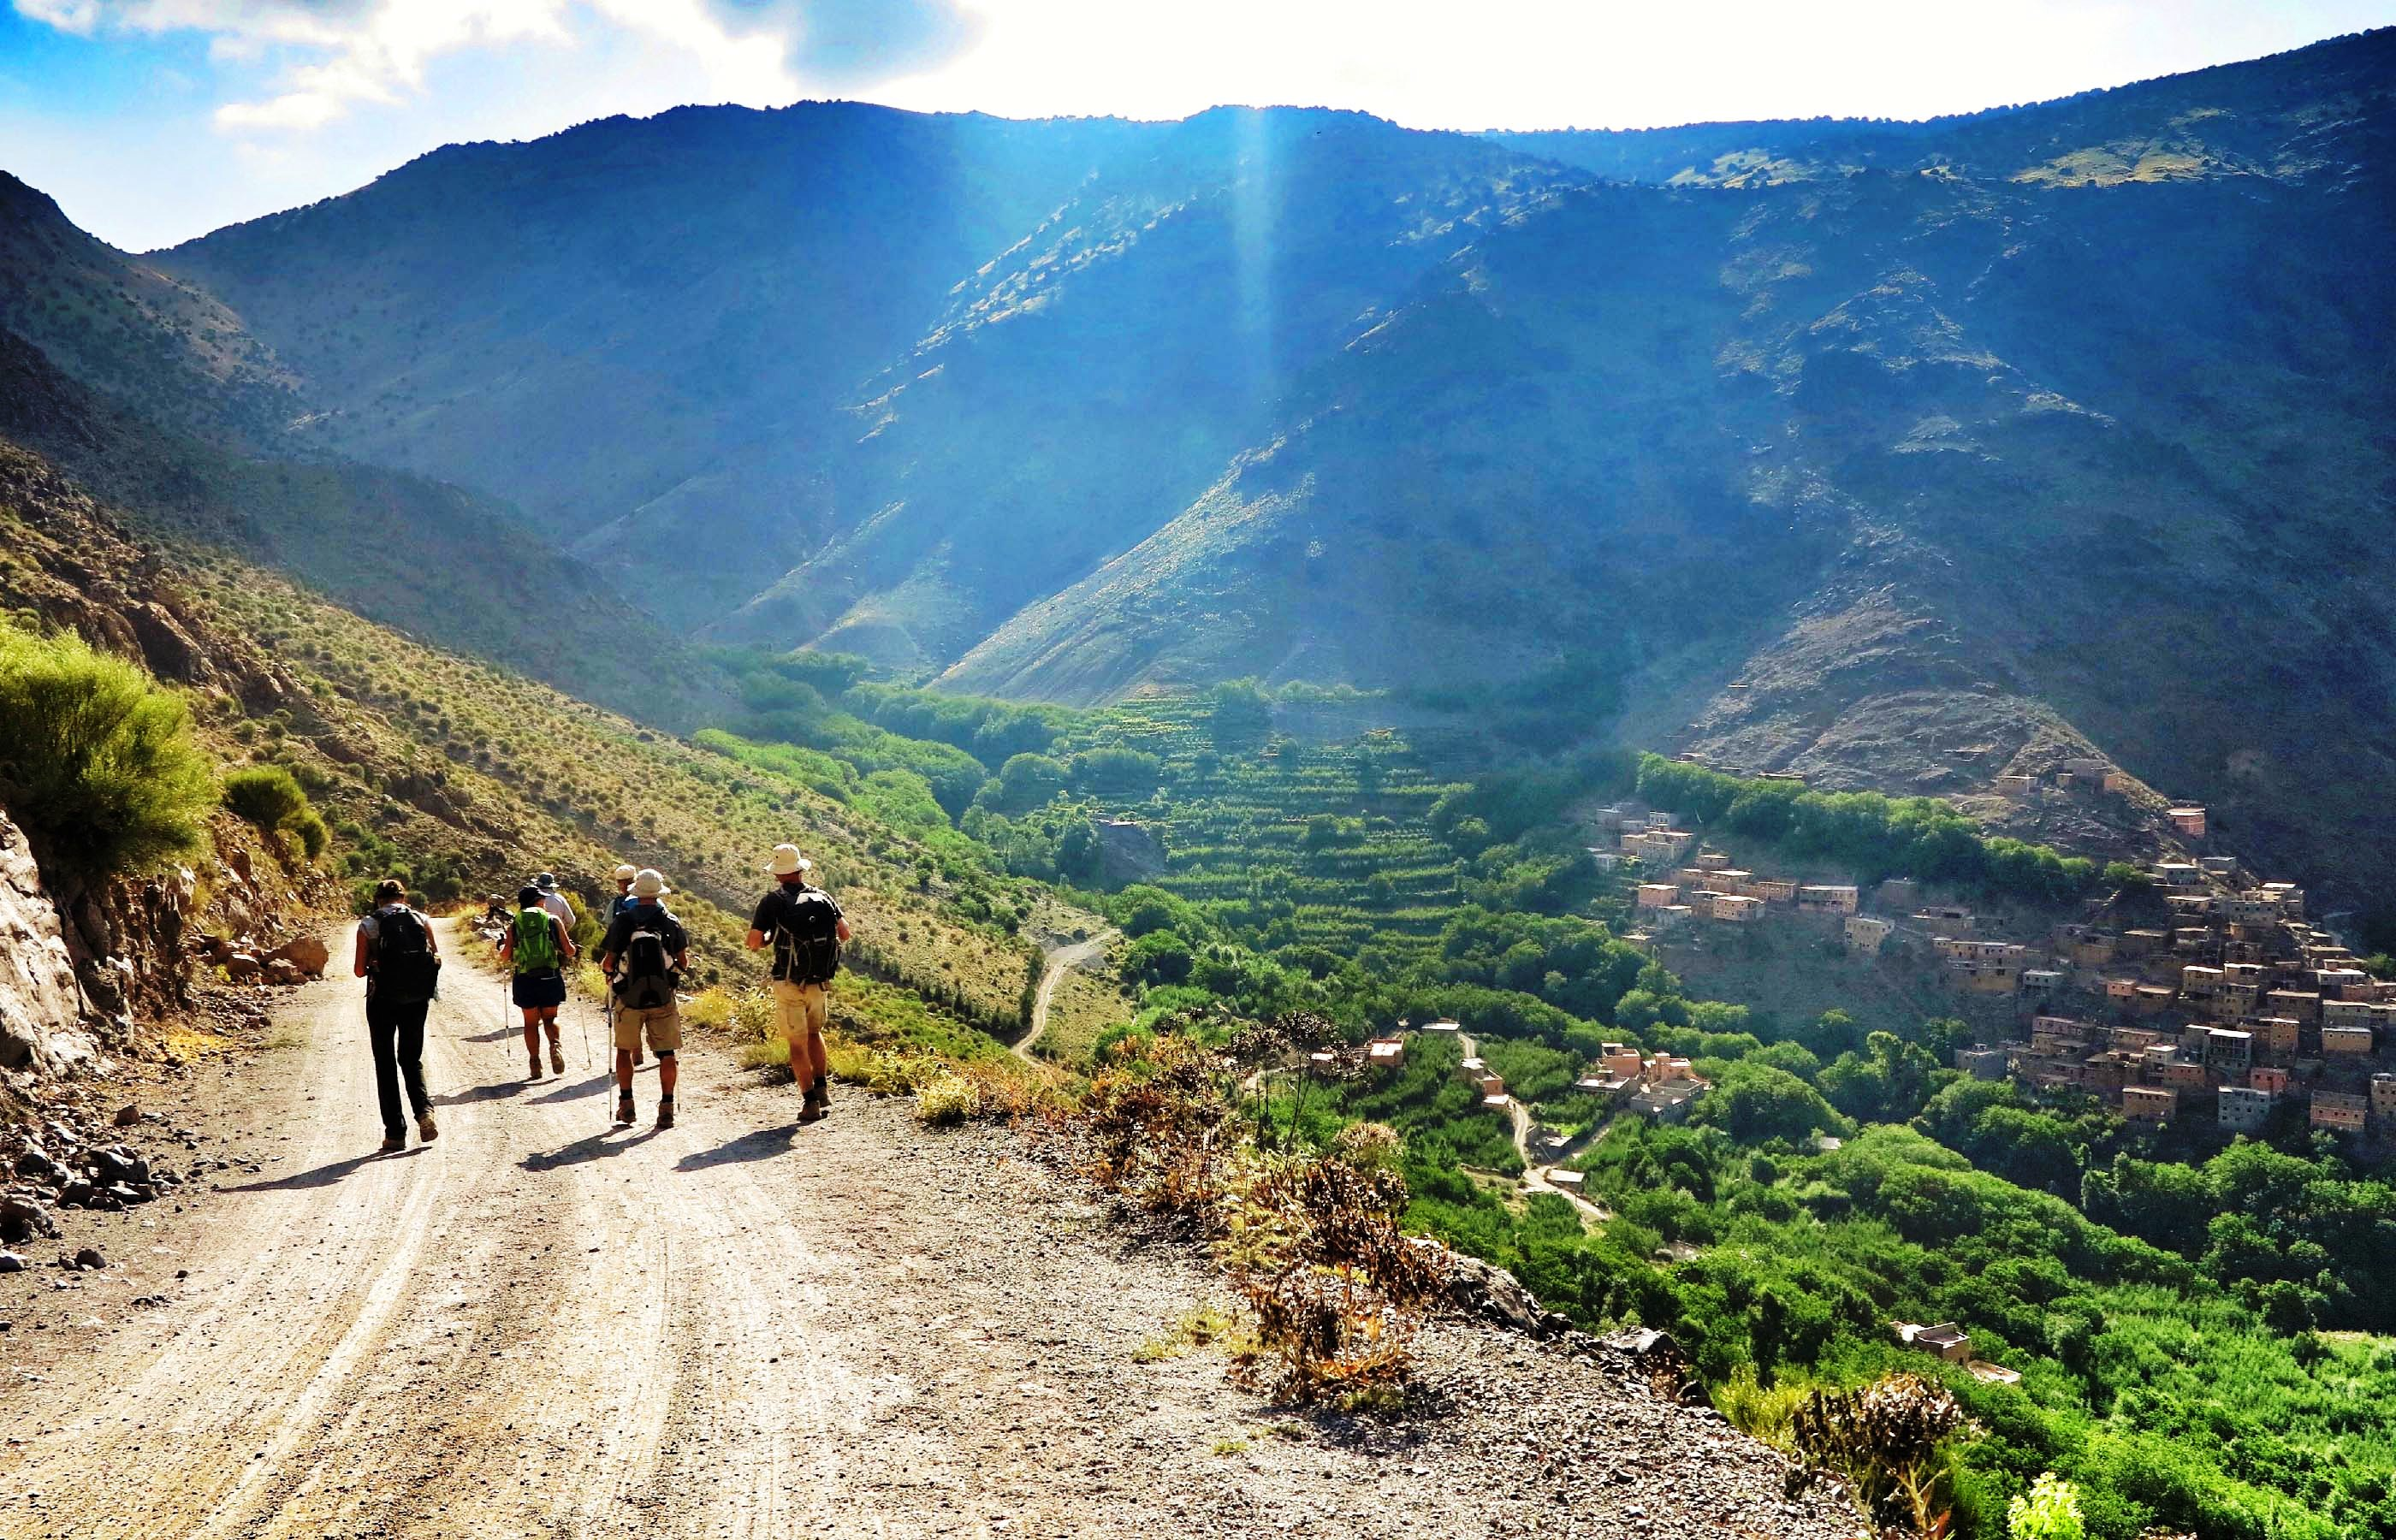 06 days hiking tours to Atlas Mountains from Marrakech in Morocco